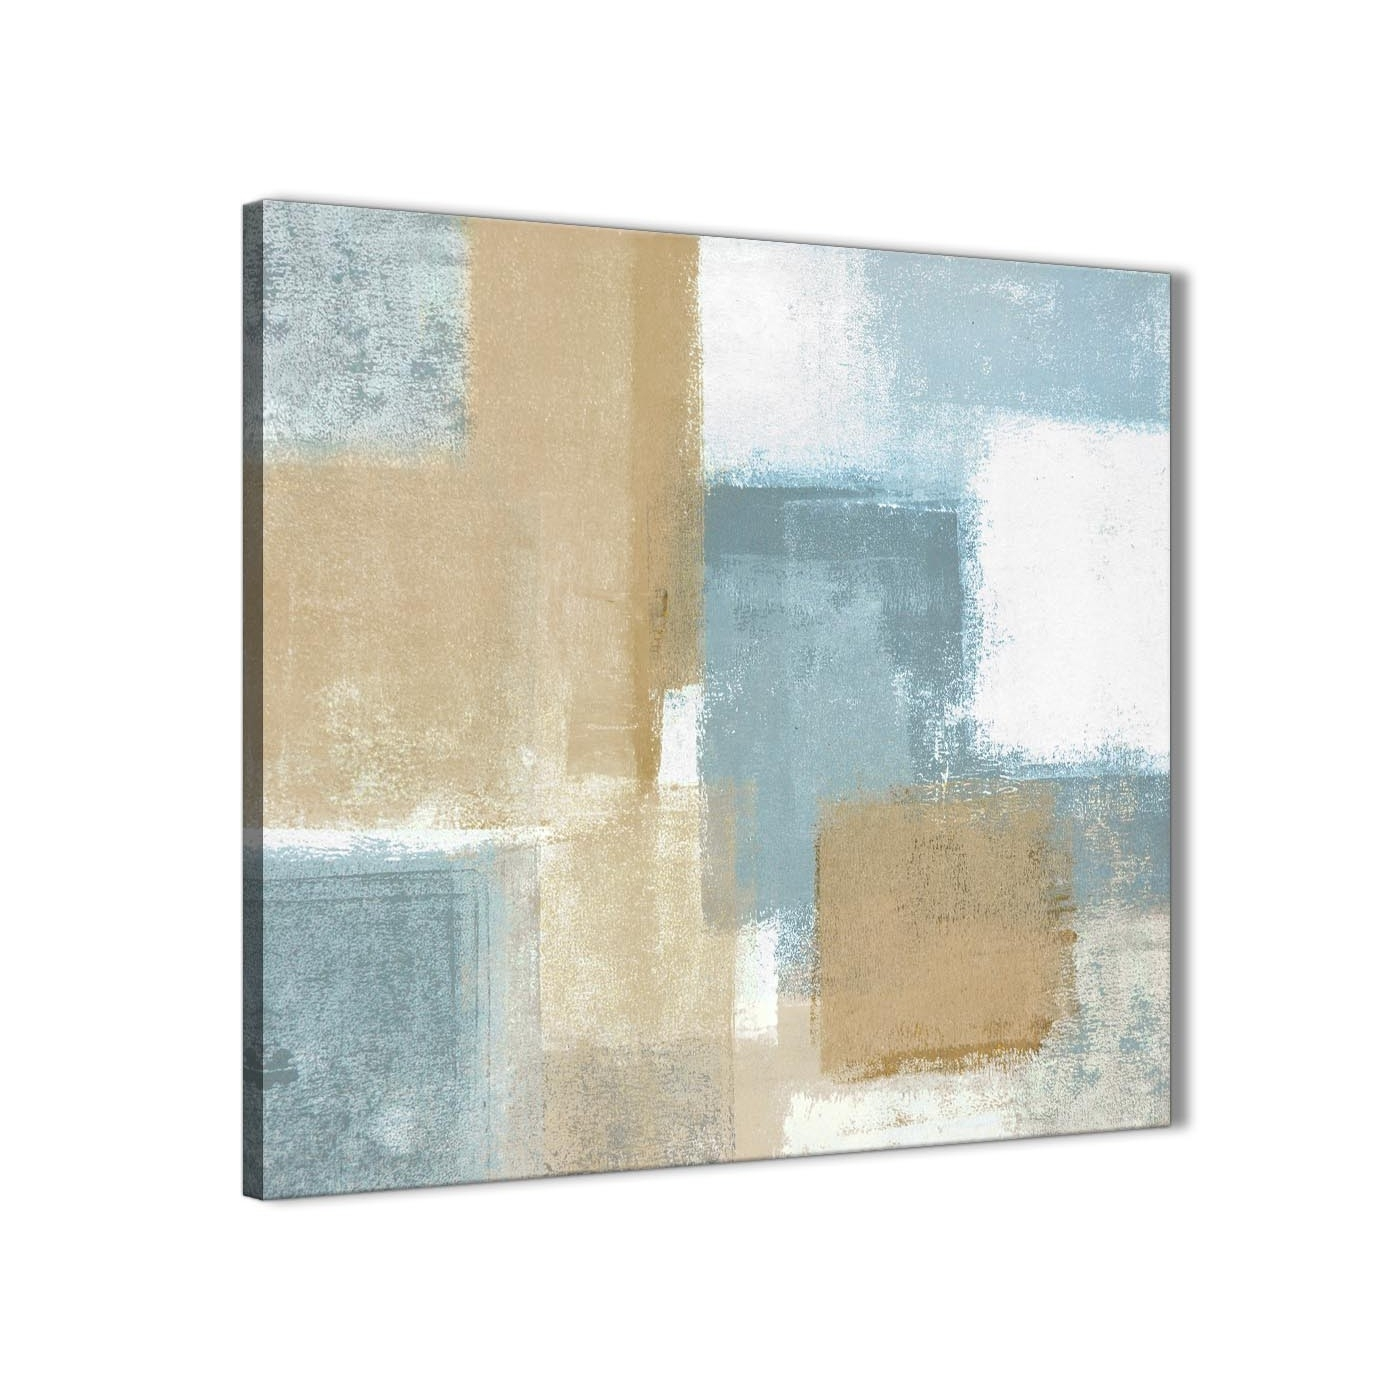 Blue Beige Brown Abstract Painting Canvas Wall Art Print – Modern For Newest Modern Abstract Painting Wall Art (View 13 of 20)